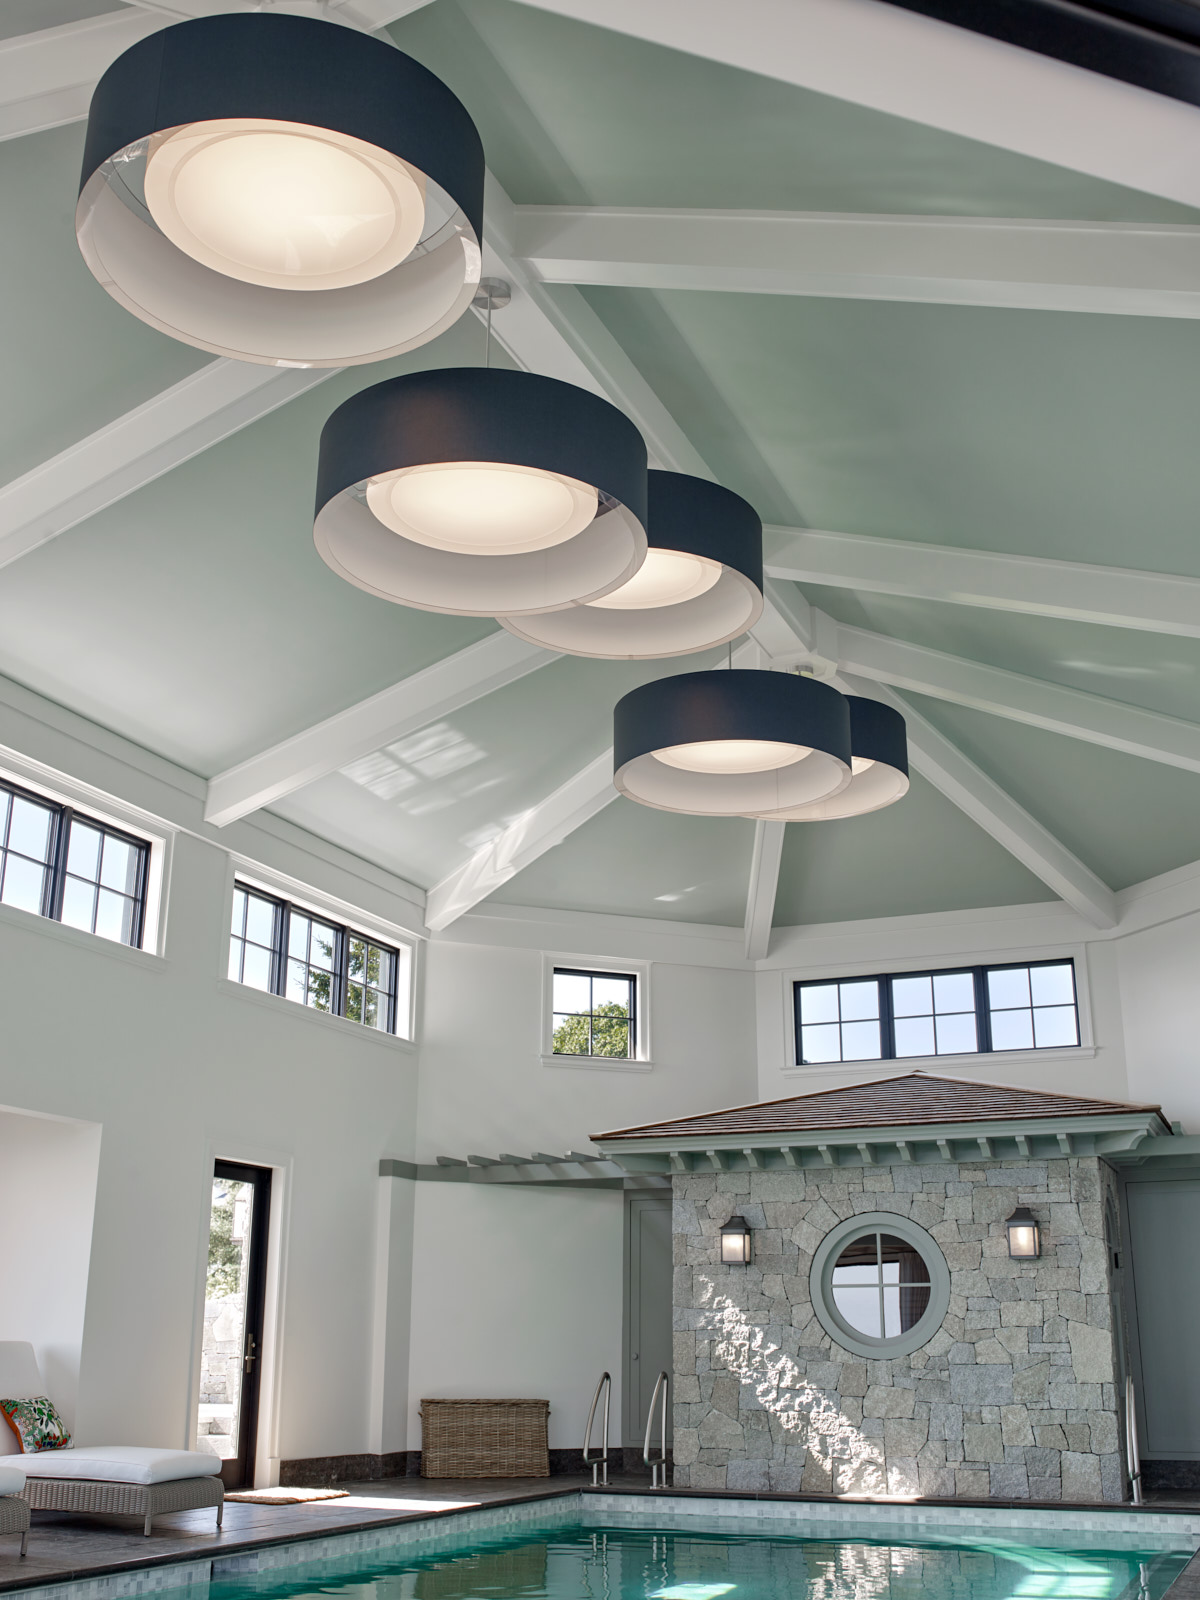 The modern lighting completes the look with the cathedral ceiling of this indoor pool and sauna room.